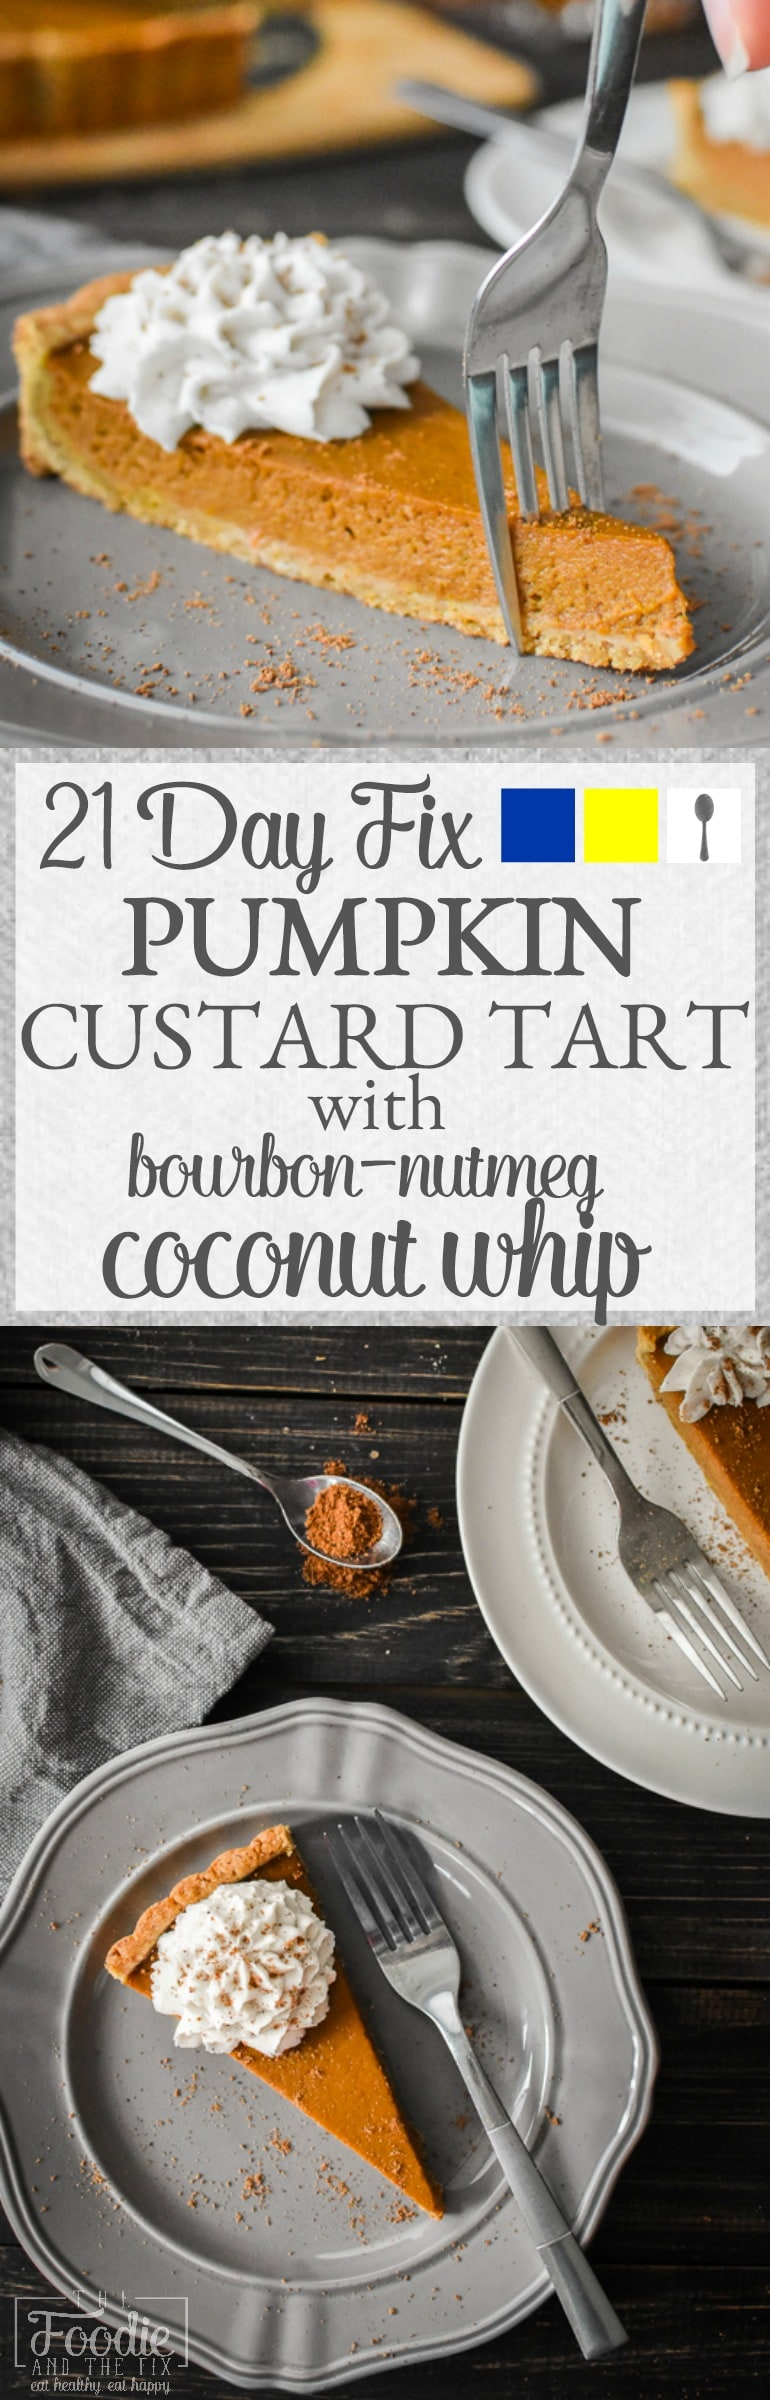 This 21 Day Fix pumpkin custard tart is my easy, delicious and healthy take on pumpkin pie. With it's pecan crust and bourbon-nutmeg coconut whip, it's the perfect dessert for Thanksgiving or any holiday! #pumpkin #pumpkinpie #all #thanksgiving #holiday #21dayfix #kidfriendly #healthy #dessert #healthydessert